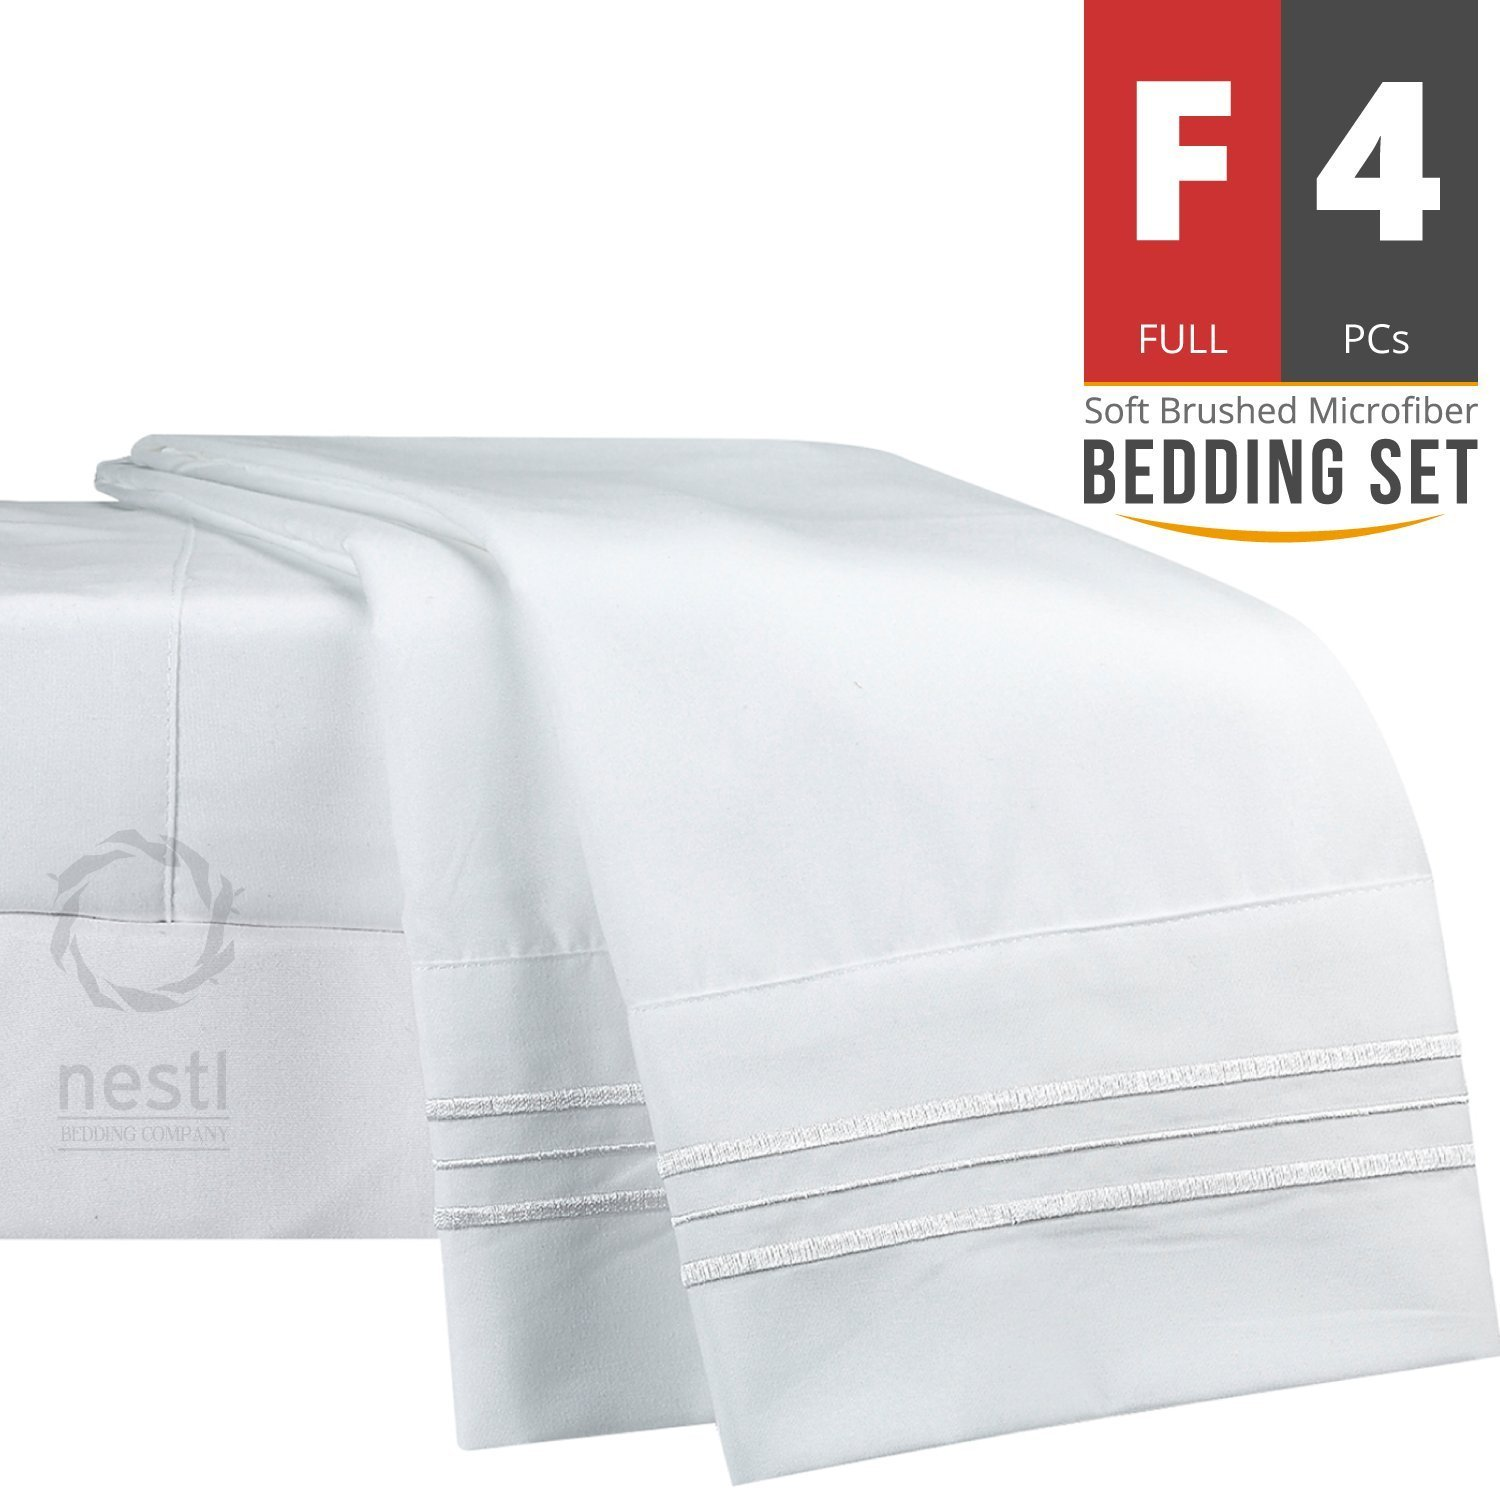 Full Double Bed Full Double Bed Sheet Bedding Set 100 Soft Brushed Microfiber Brand New